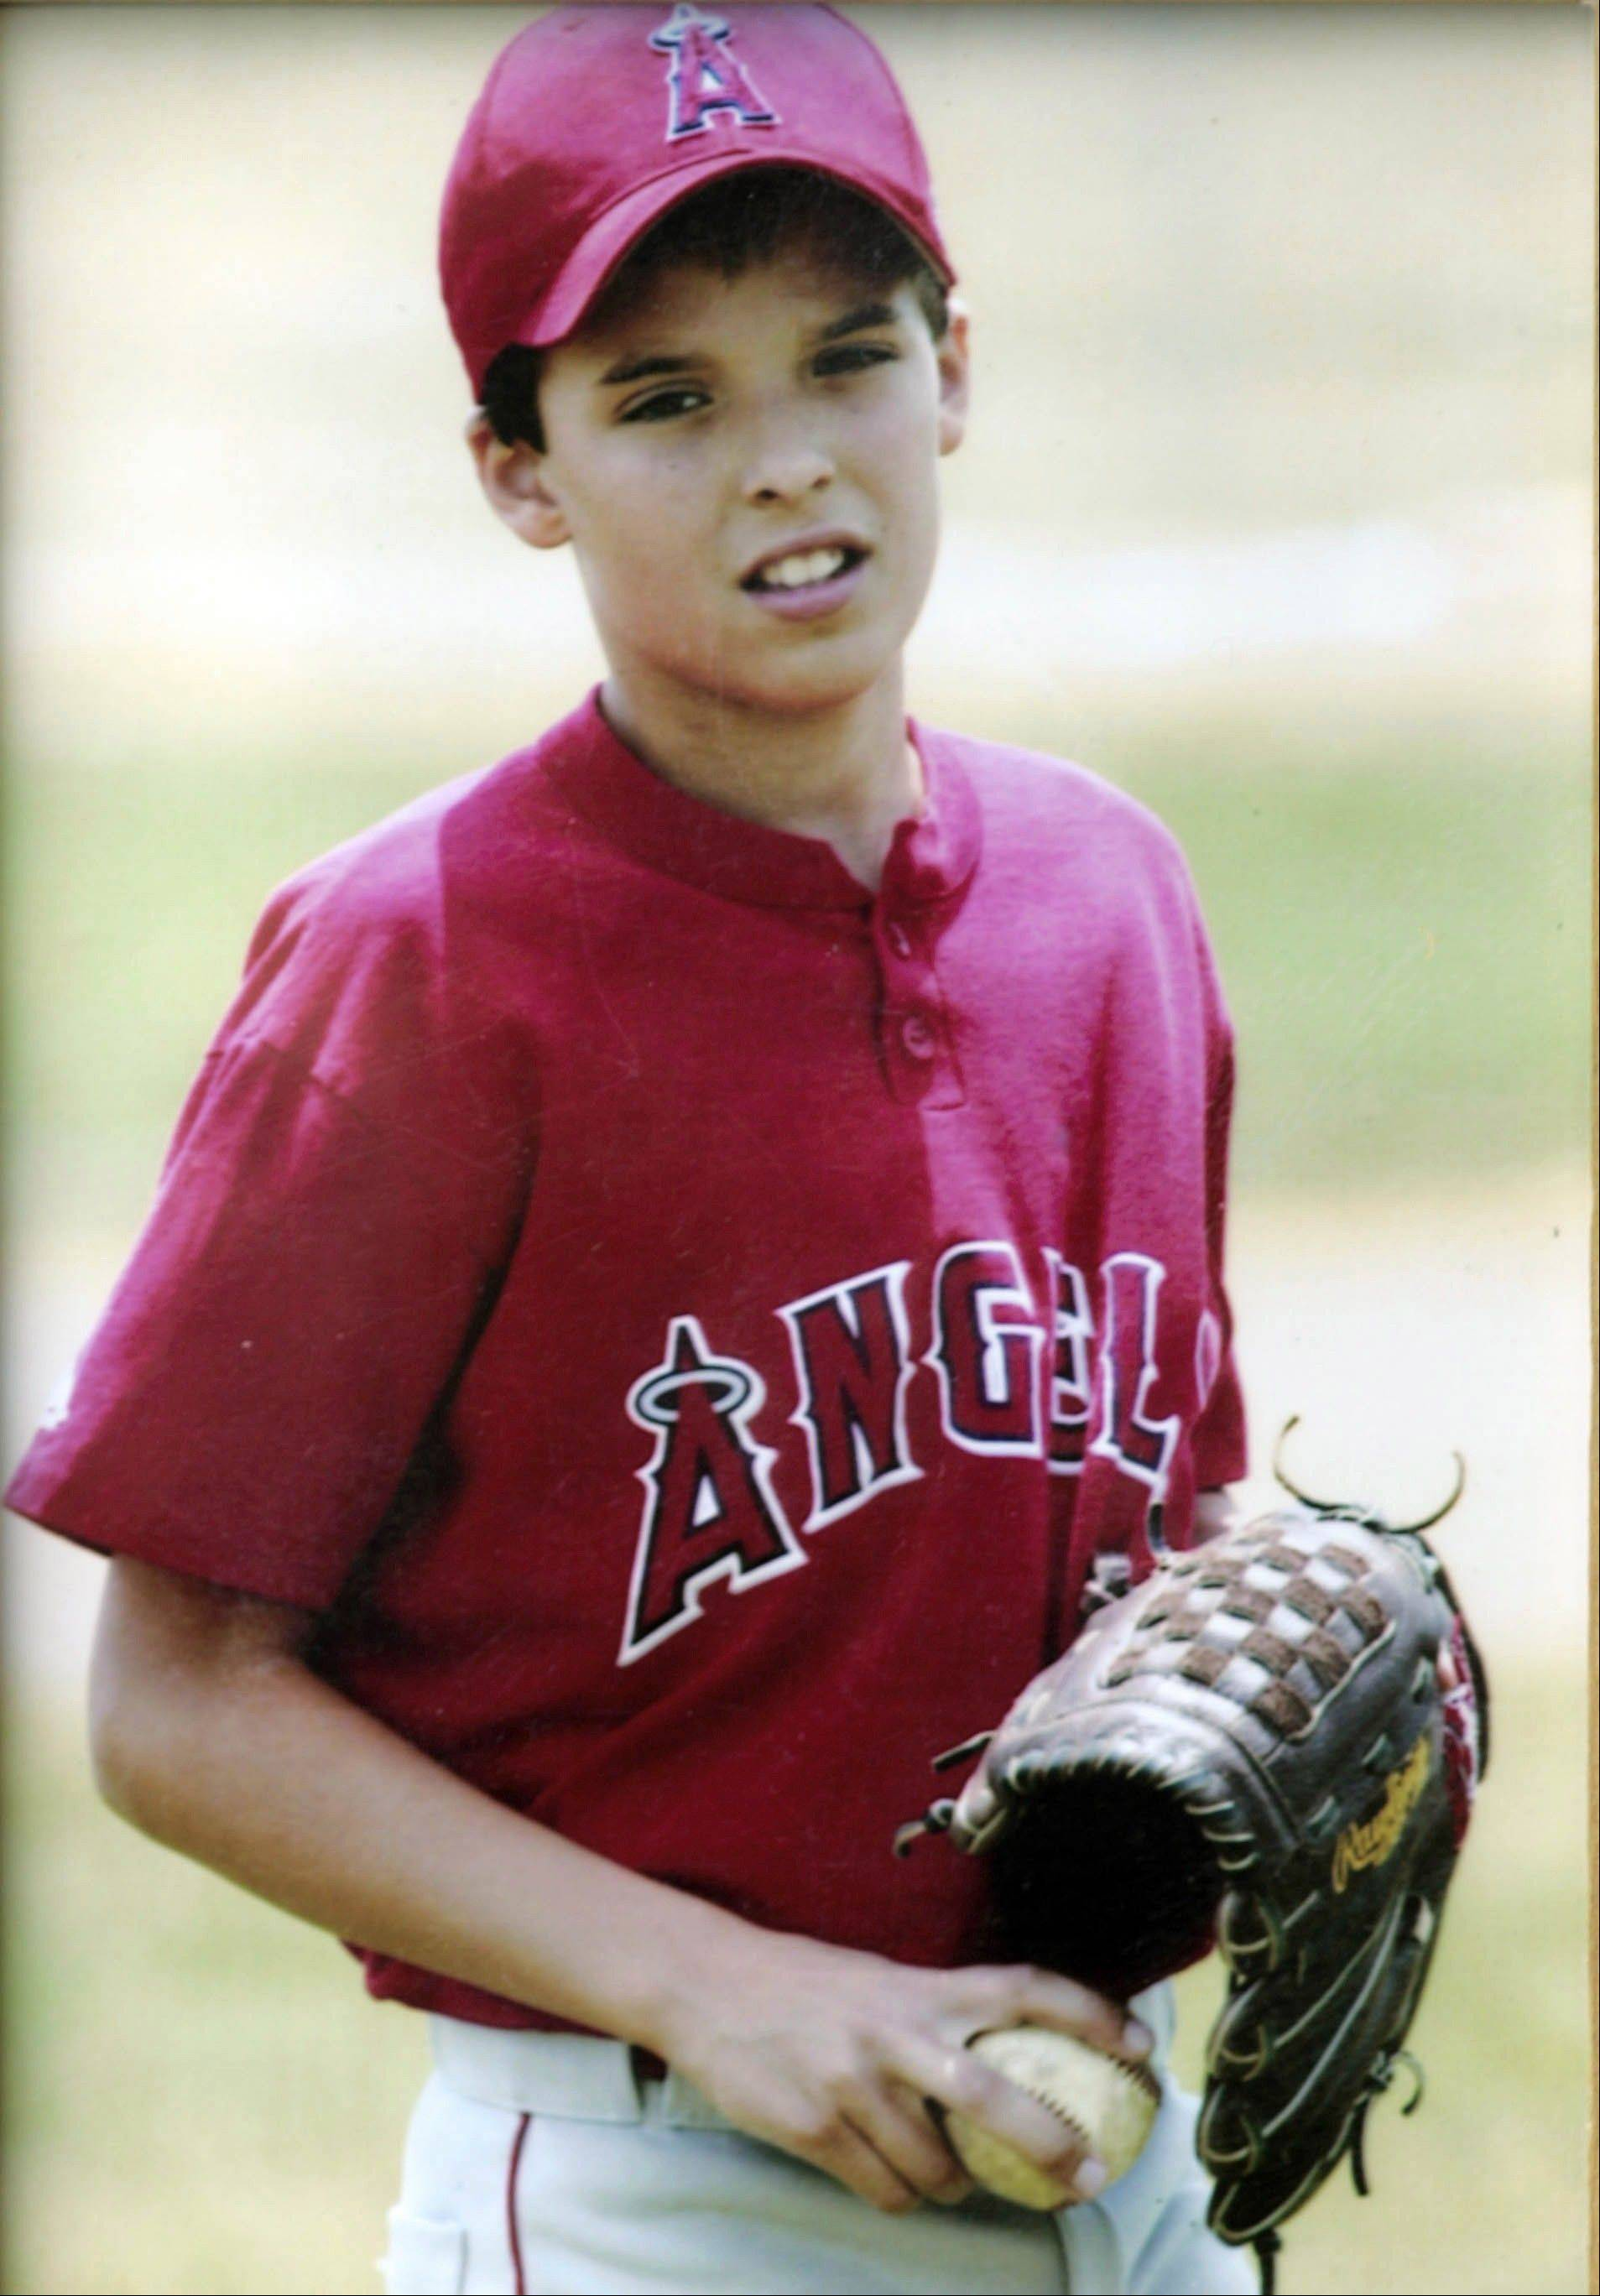 Cal Sutter was 13 when he died of leukemia in 2006. Because no child or family should have to face what his son and his family faced, Cal's father, Tom Sutter, created Cal's All-Star Angel Foundation, a South Elgin nonprofit.